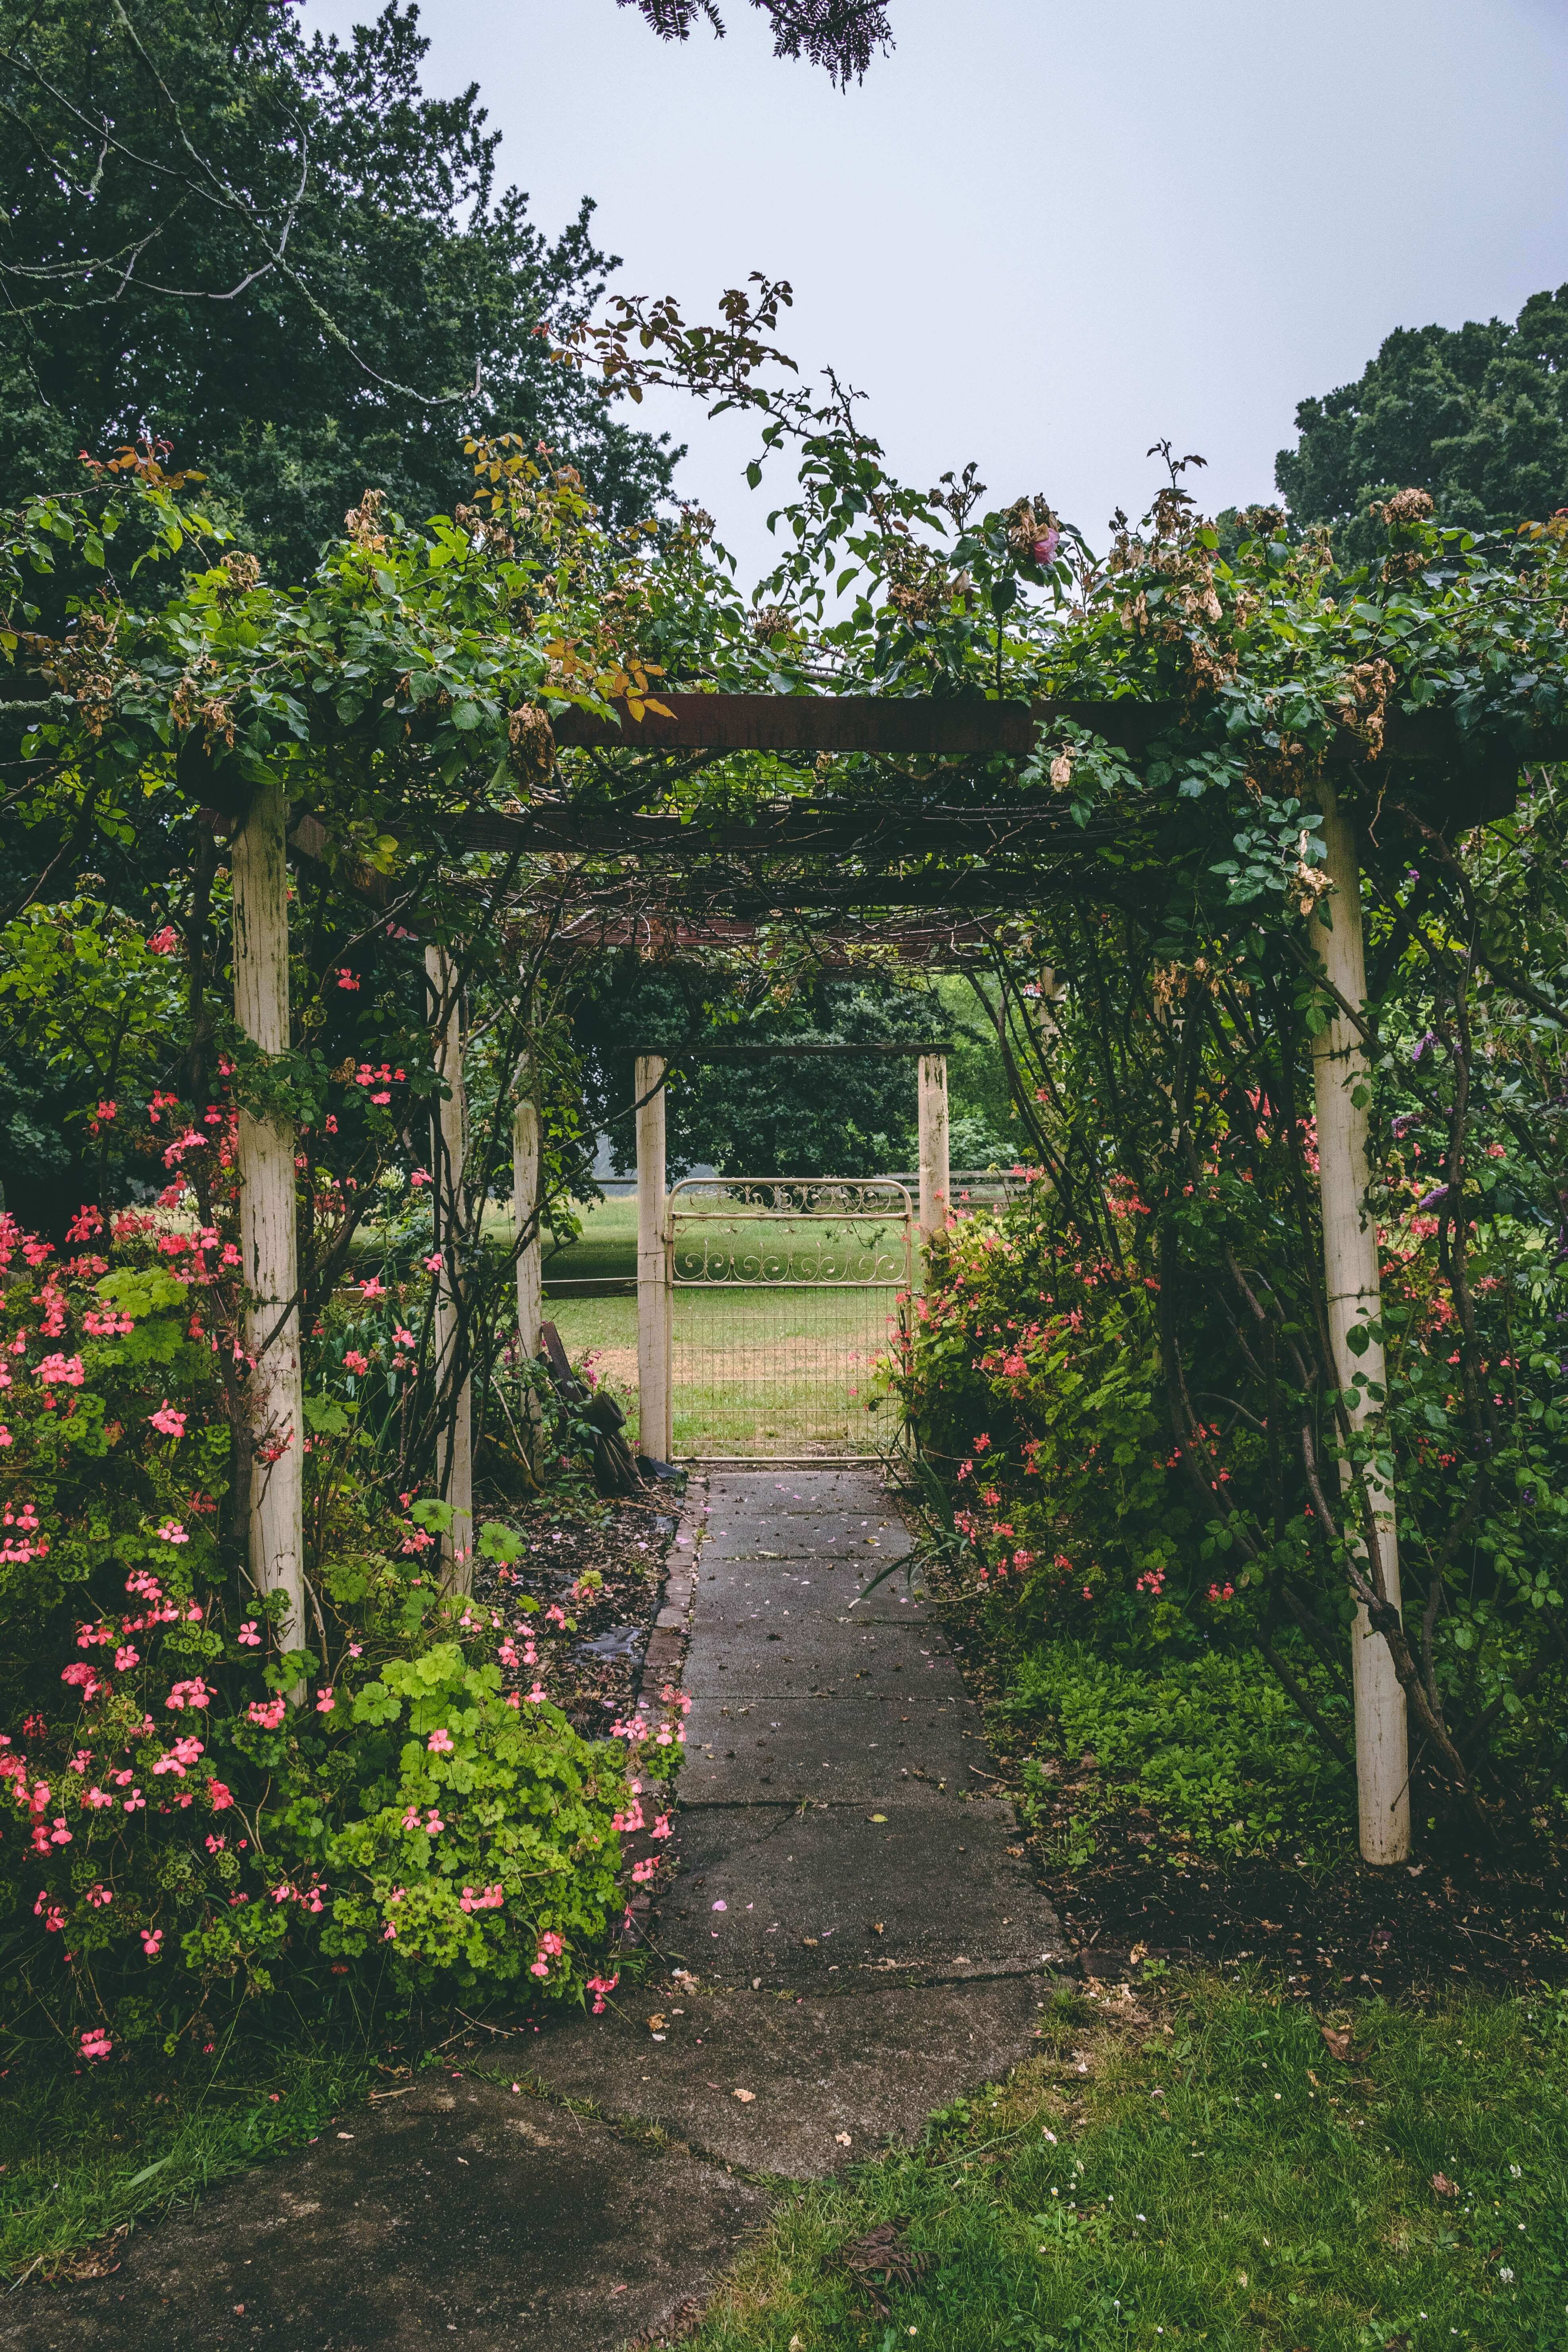 Archway covered in blooms in lawn.